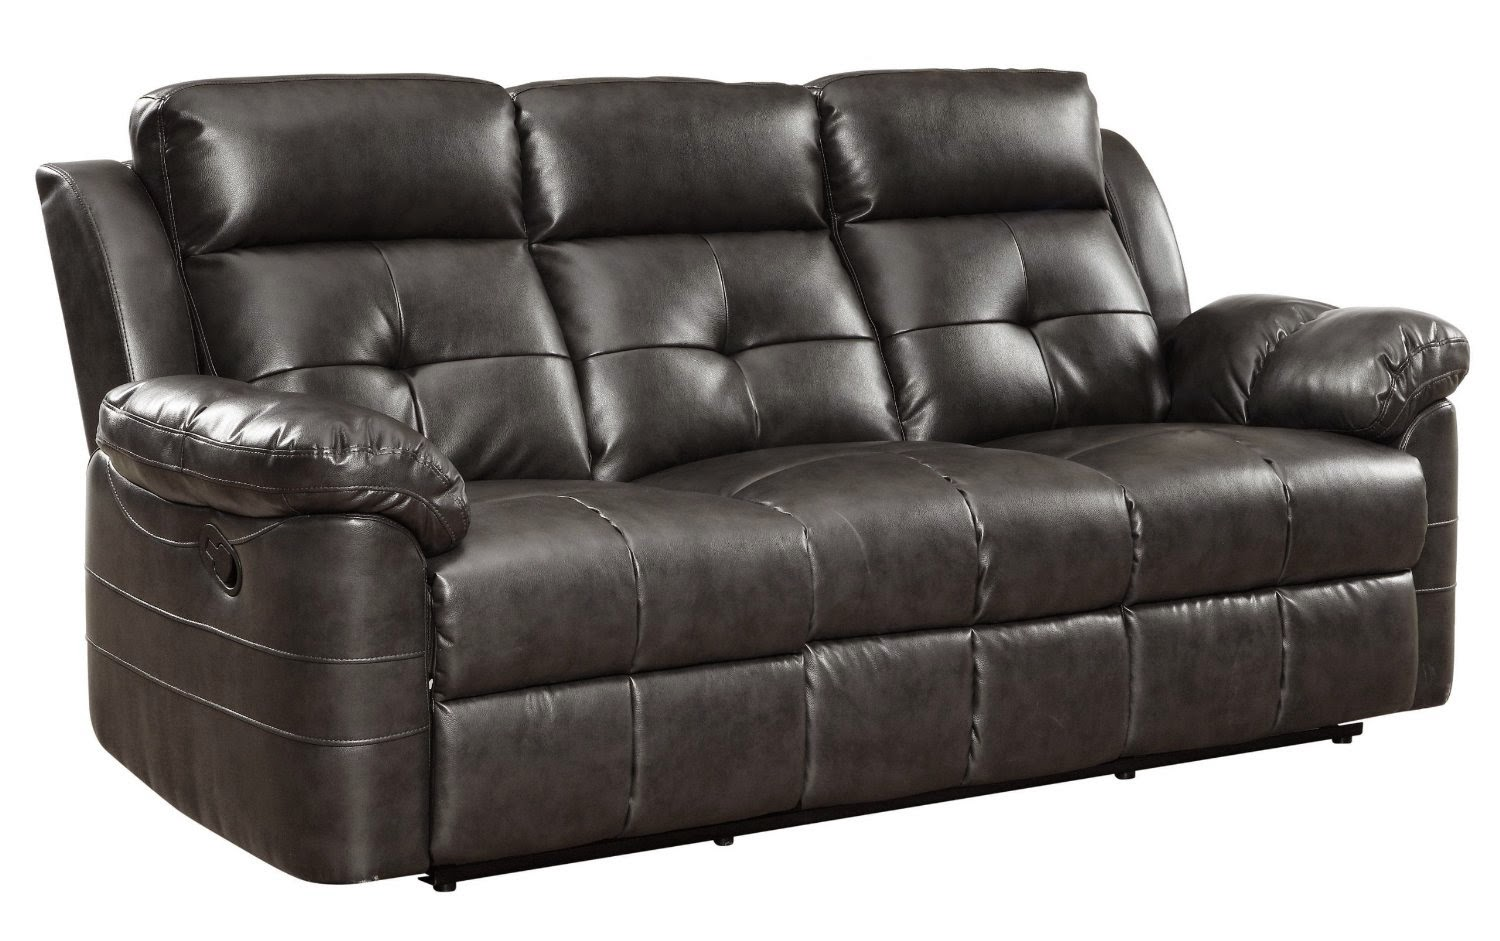 Flip chair bed ikea - Friheten Sofa Bed Moheda Sofa Bed Leather Sofa Bed Ikea